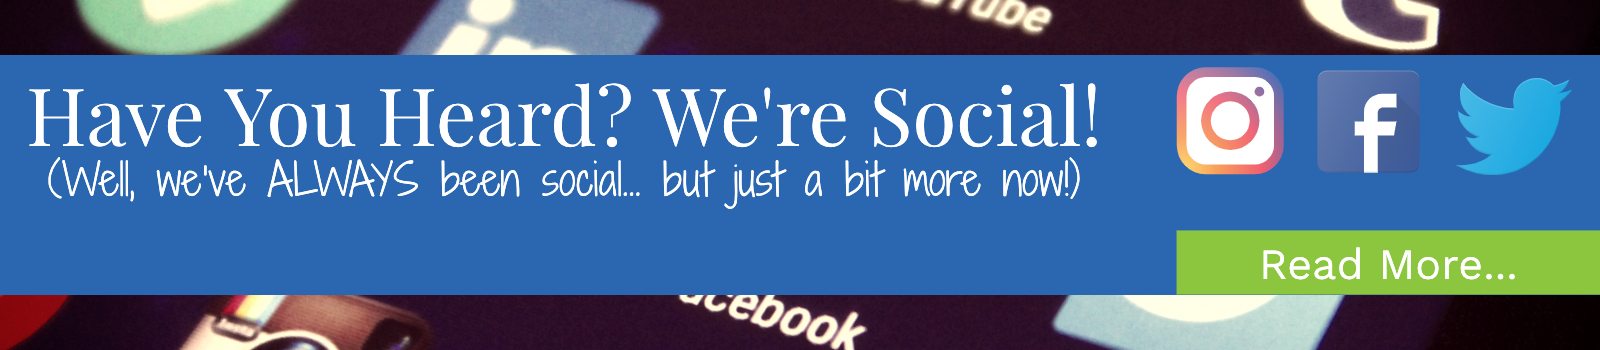 Image-We are on social media